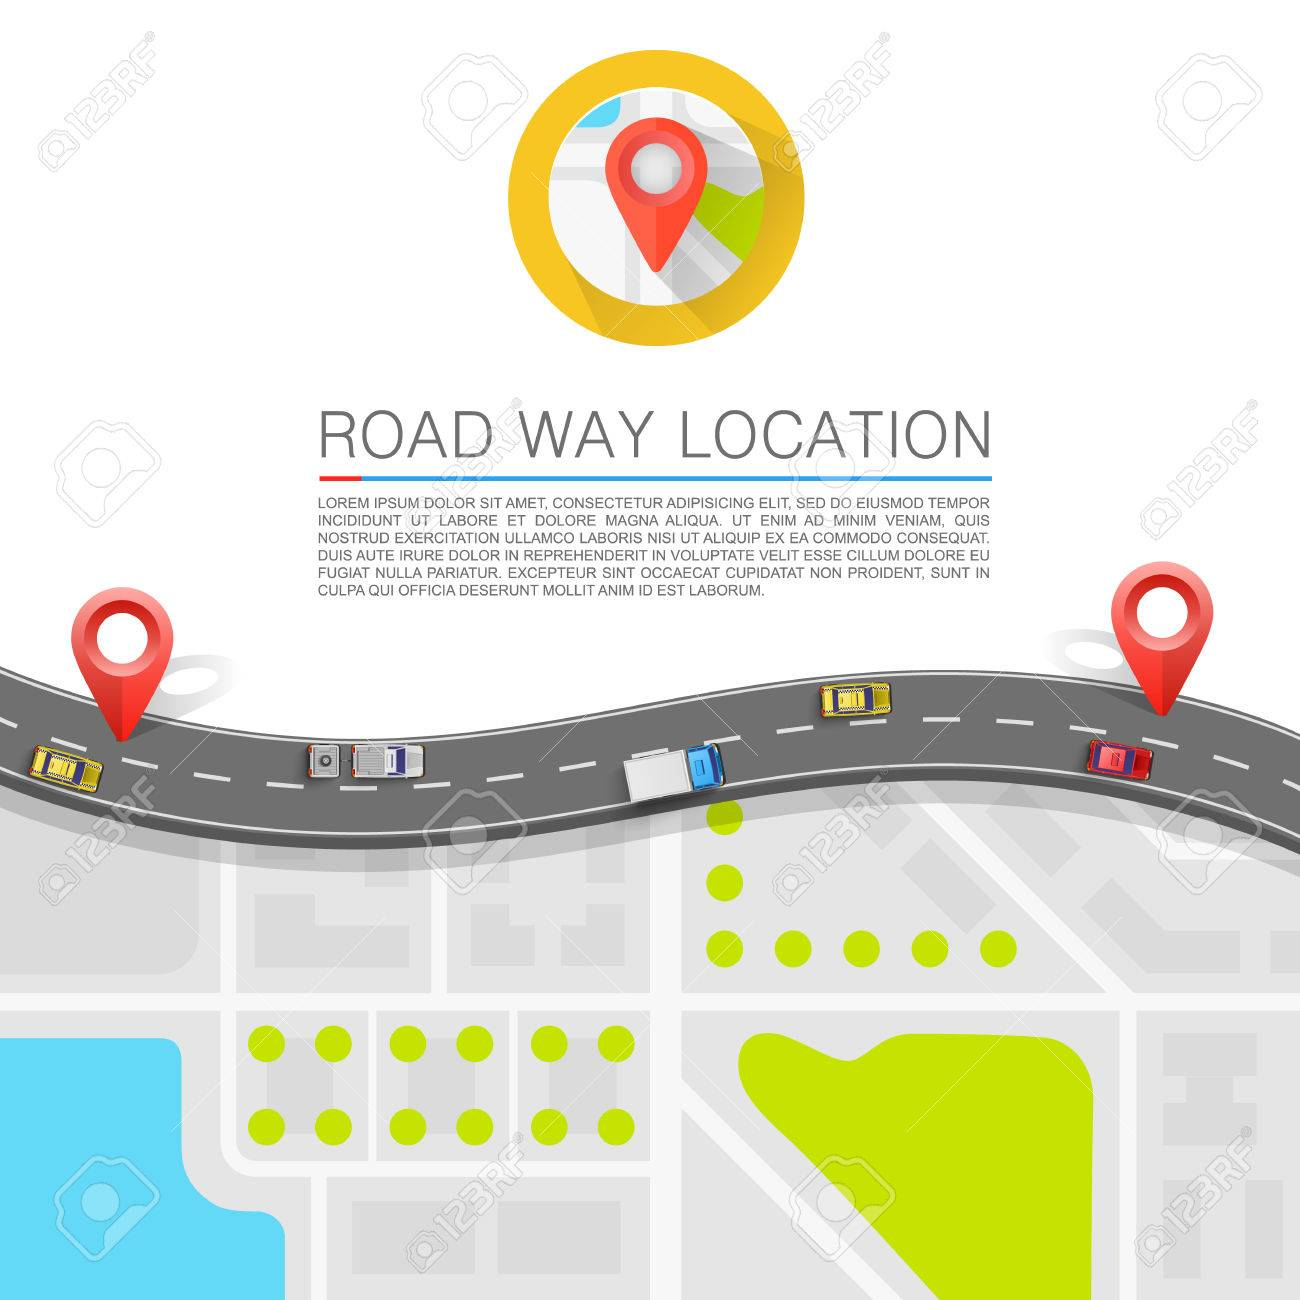 Paved path on the road art. Vector background - 35799096